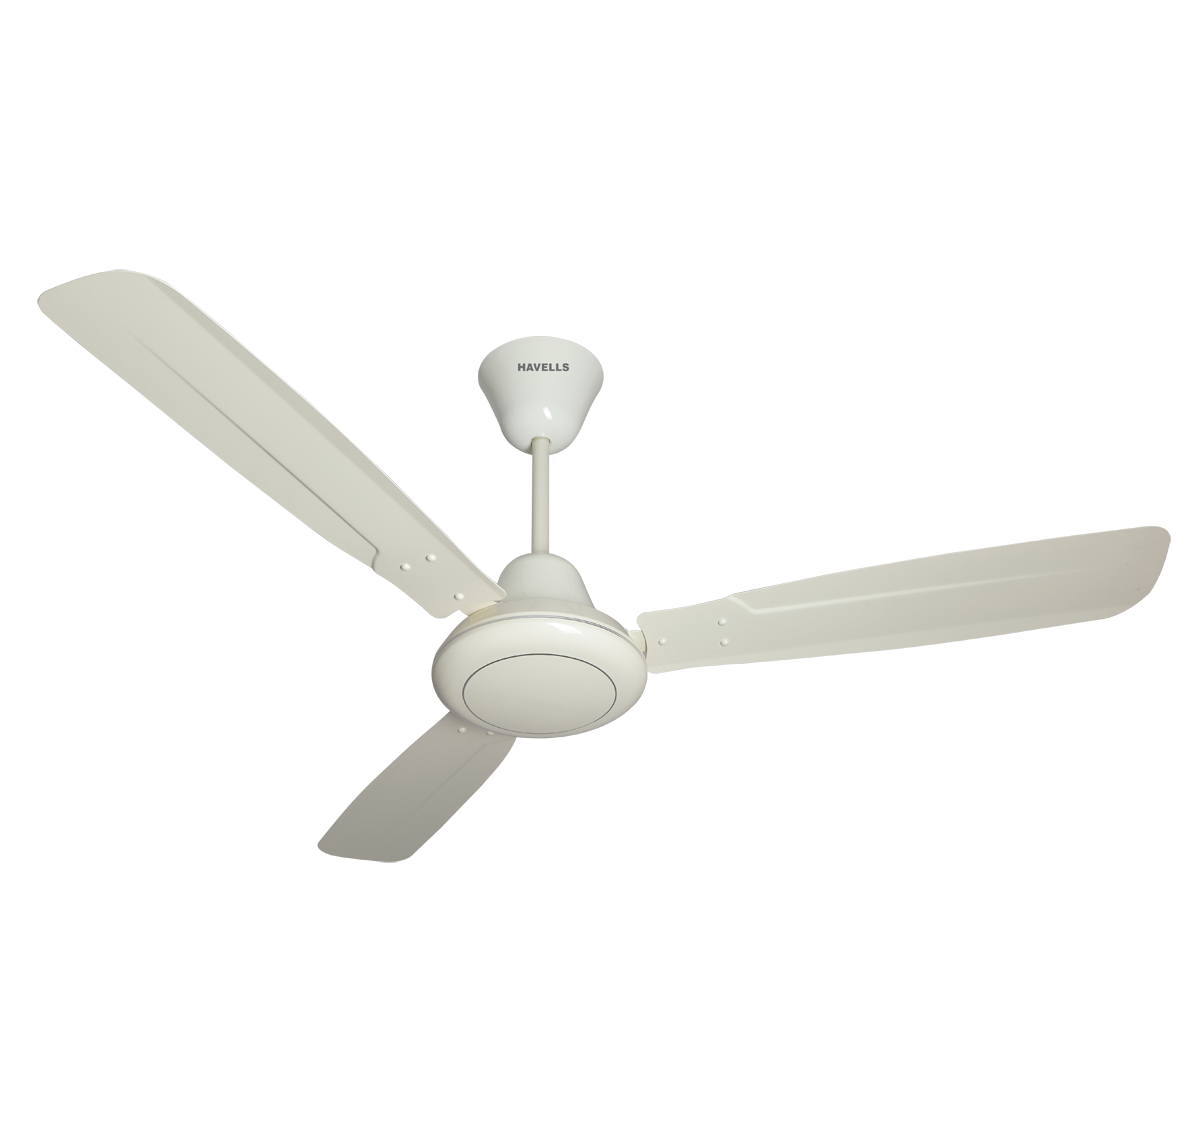 103 Reference Of Ceiling Fan India Outline In 2020 Ceiling